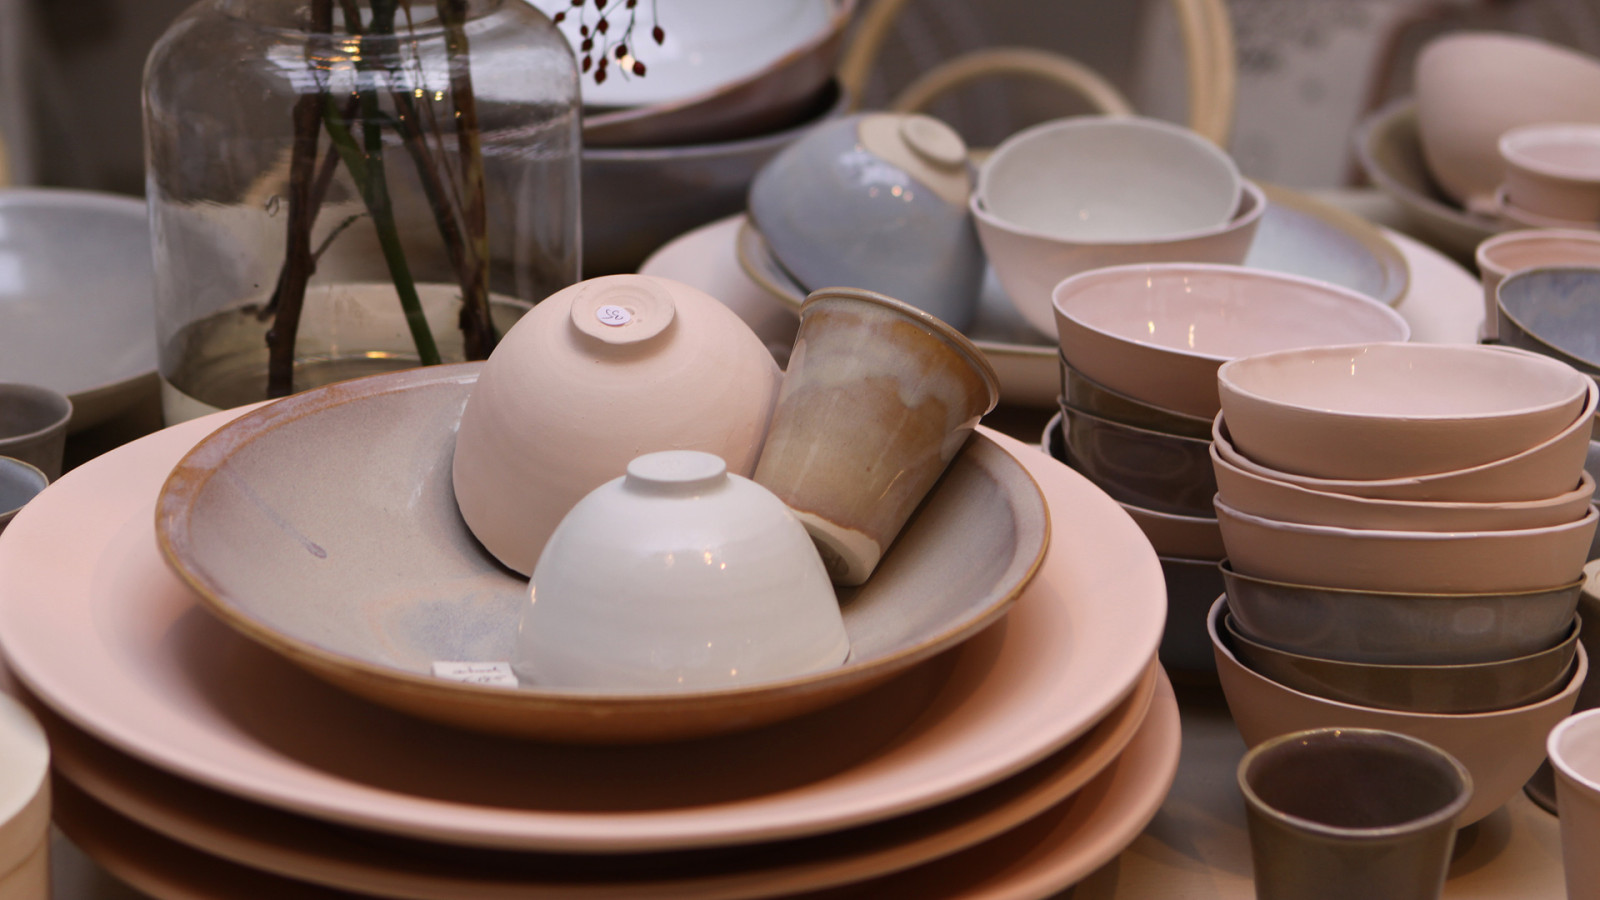 Dream table filled with pastel ceramics. To buy head on over to all-es.nl